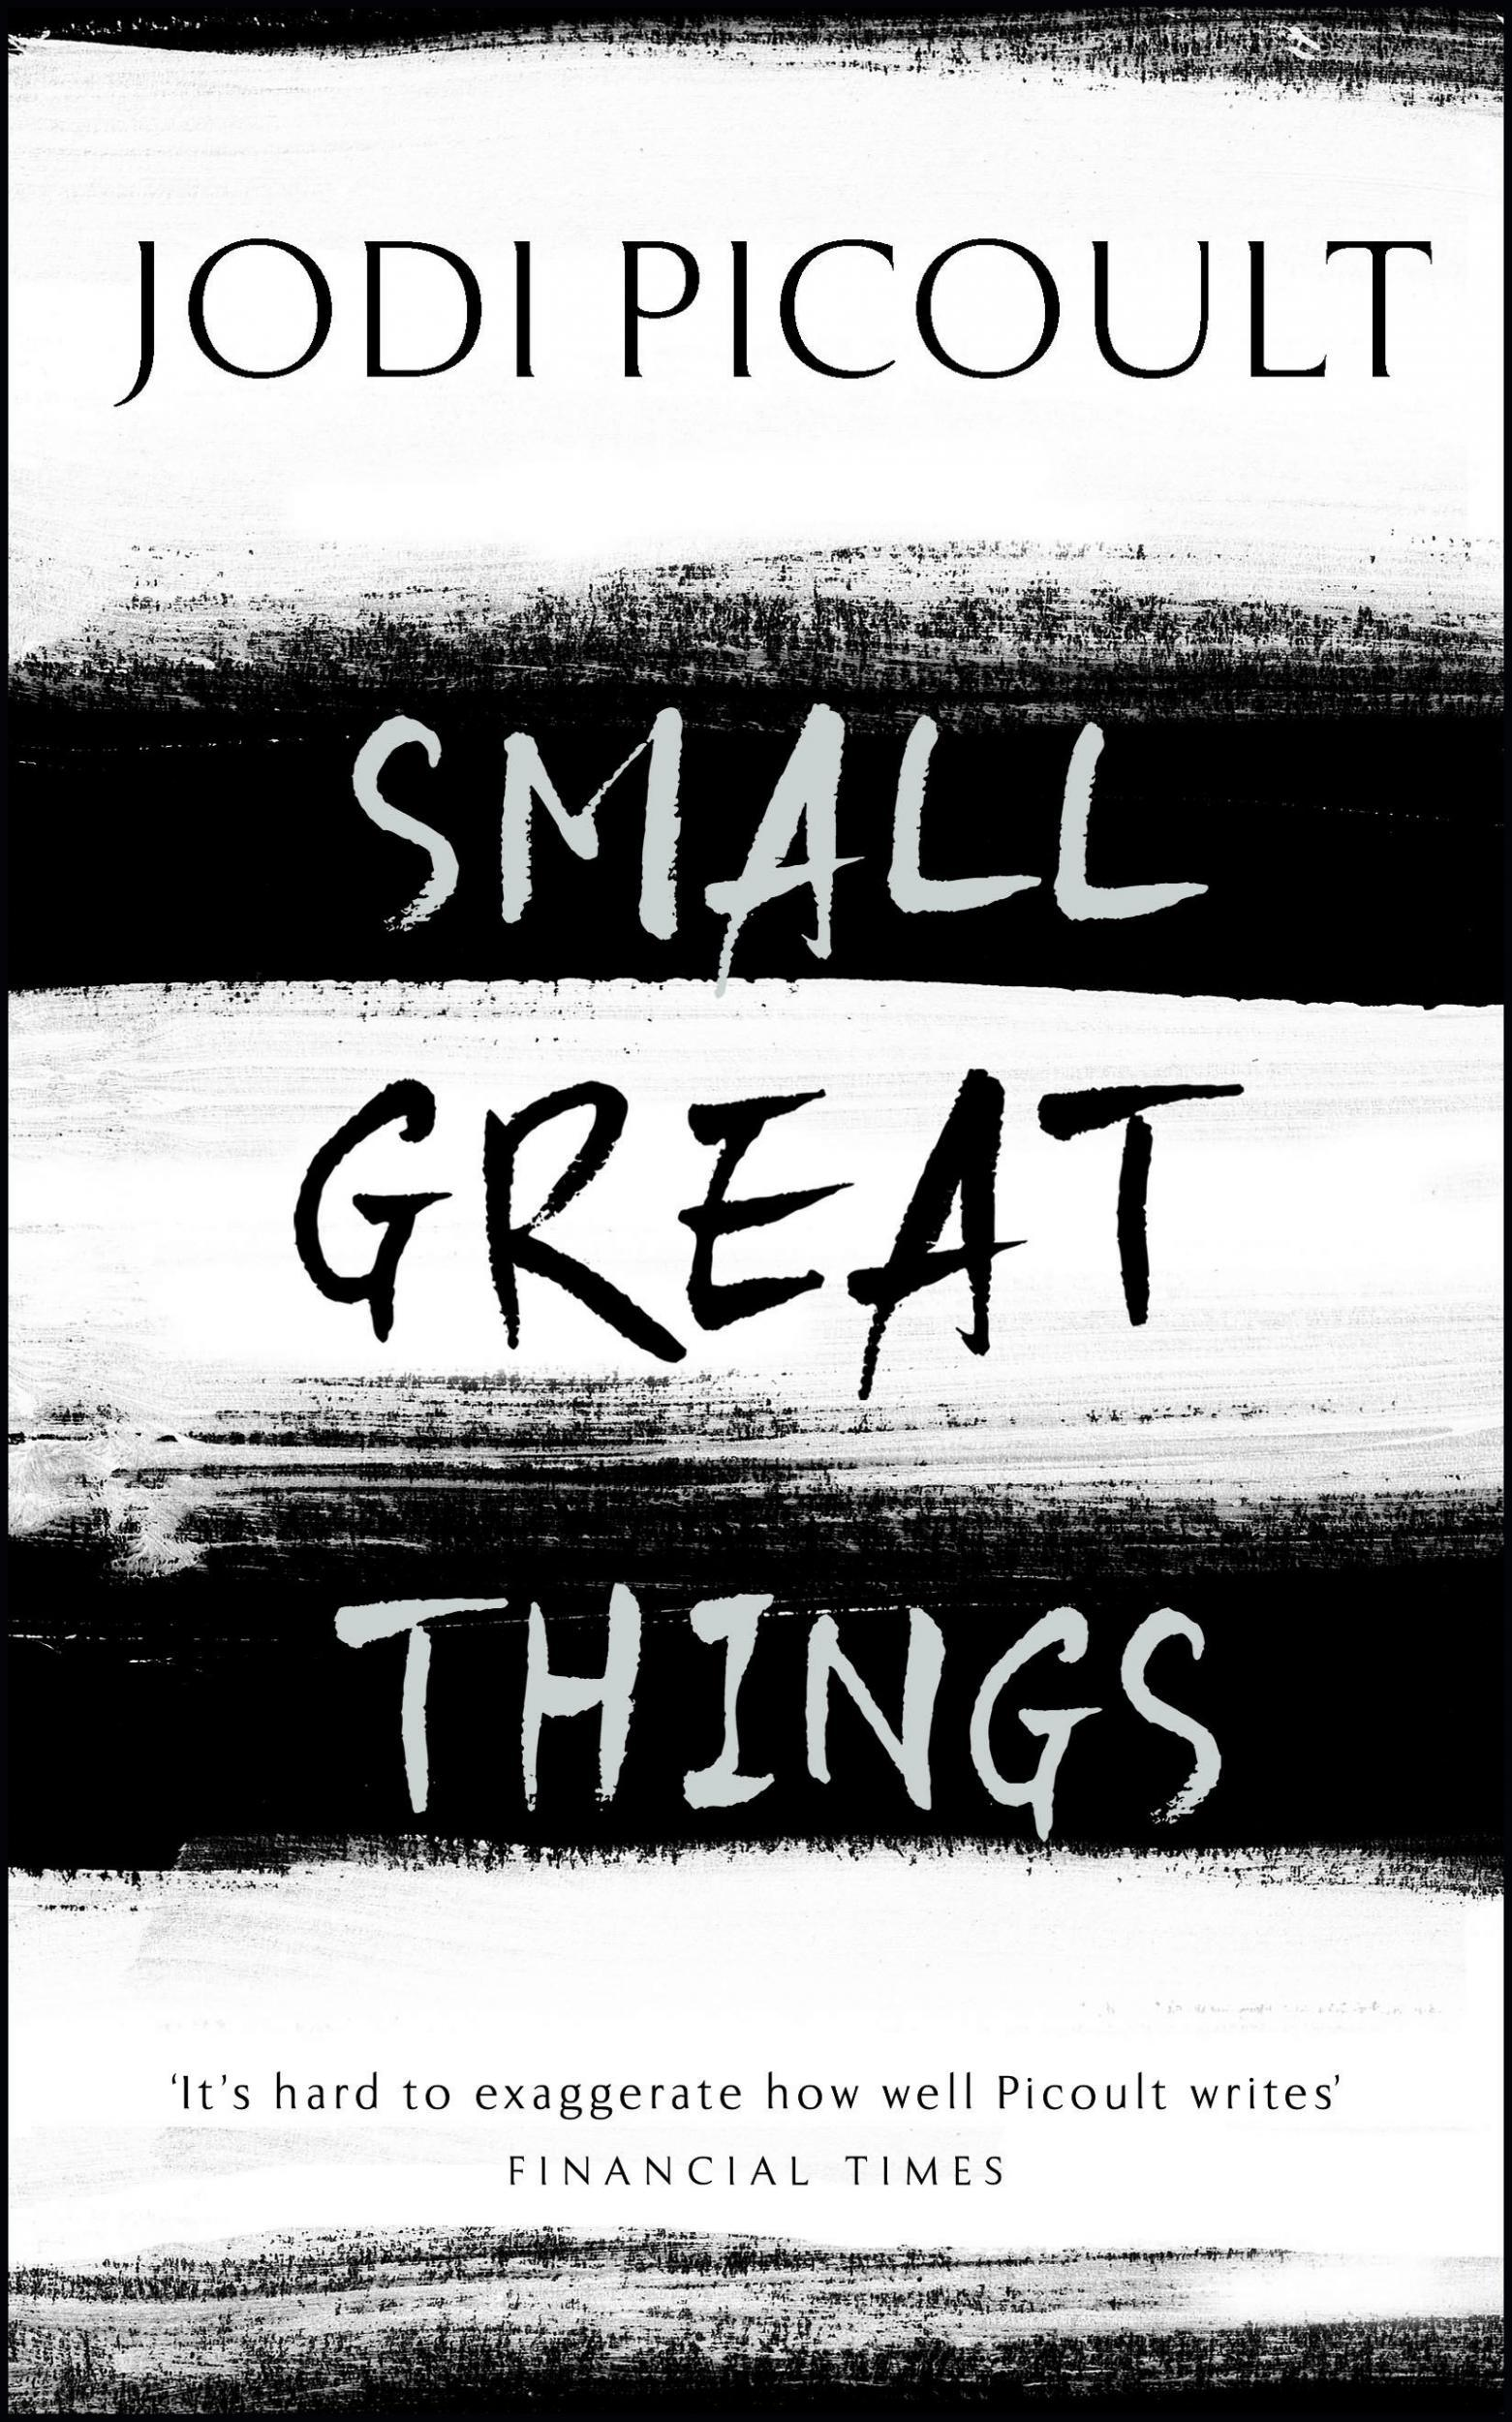 Small Great Things by Jodi Picoult, book review: The narrative rips along  at a great pace | The Independent